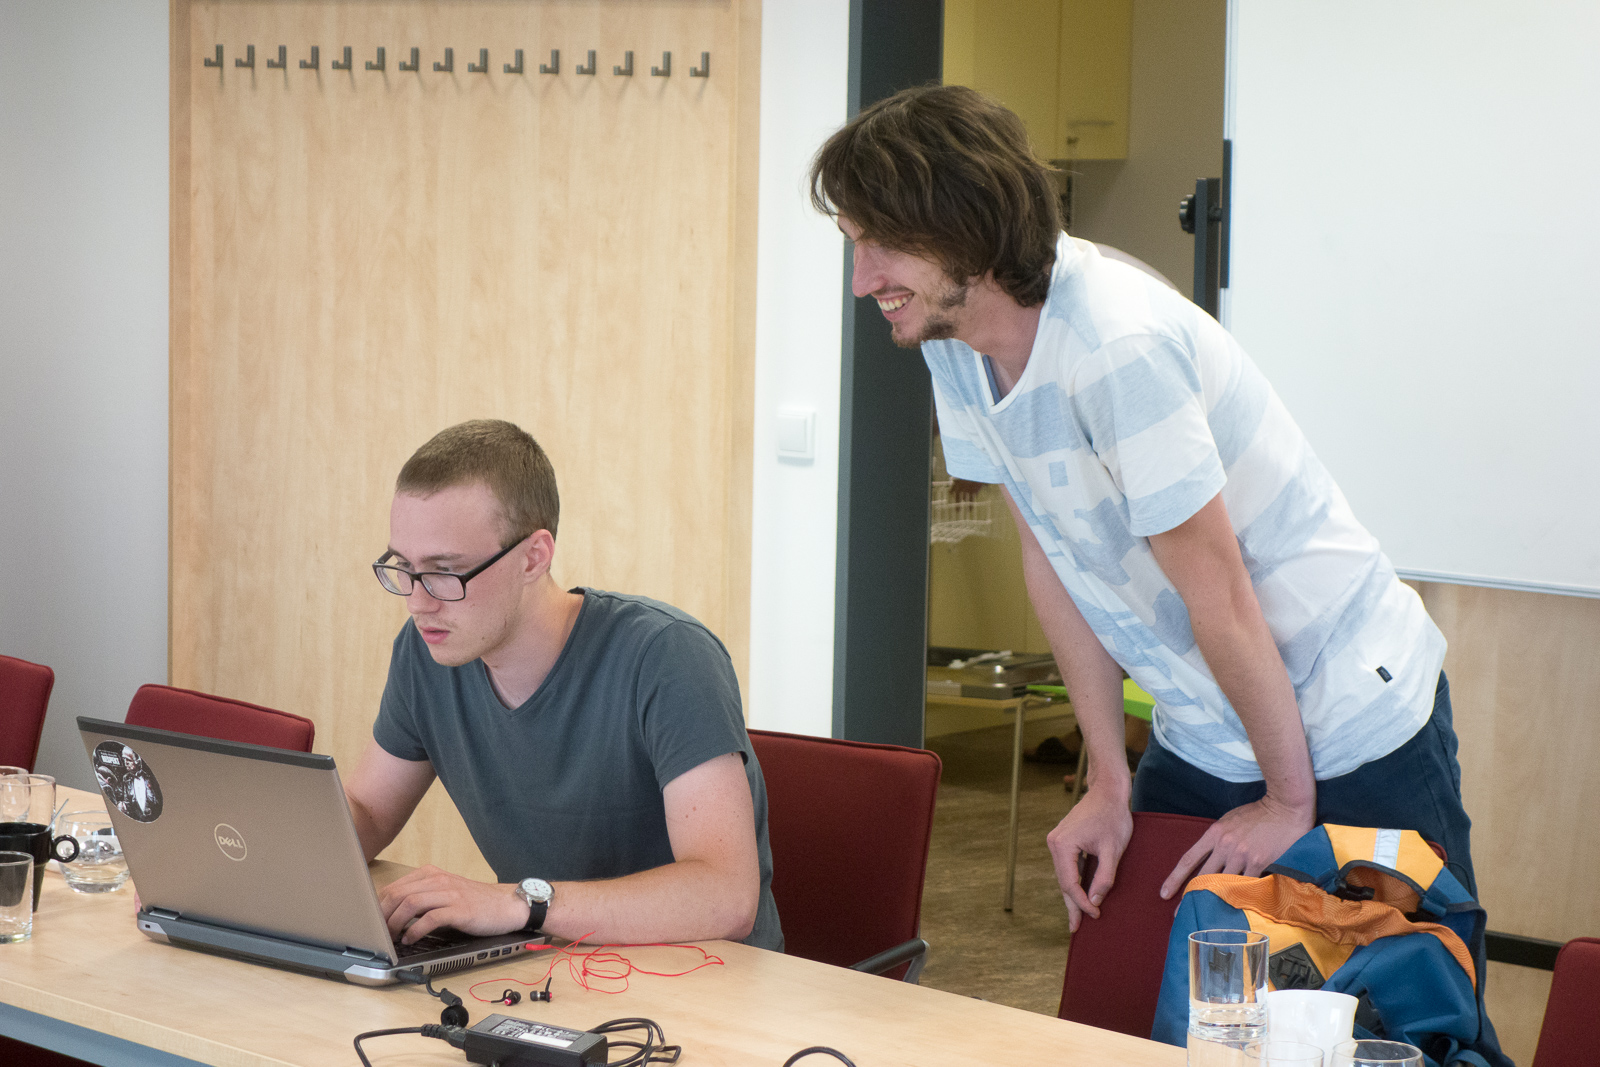 Plzen Code Camp: Organizing the Work